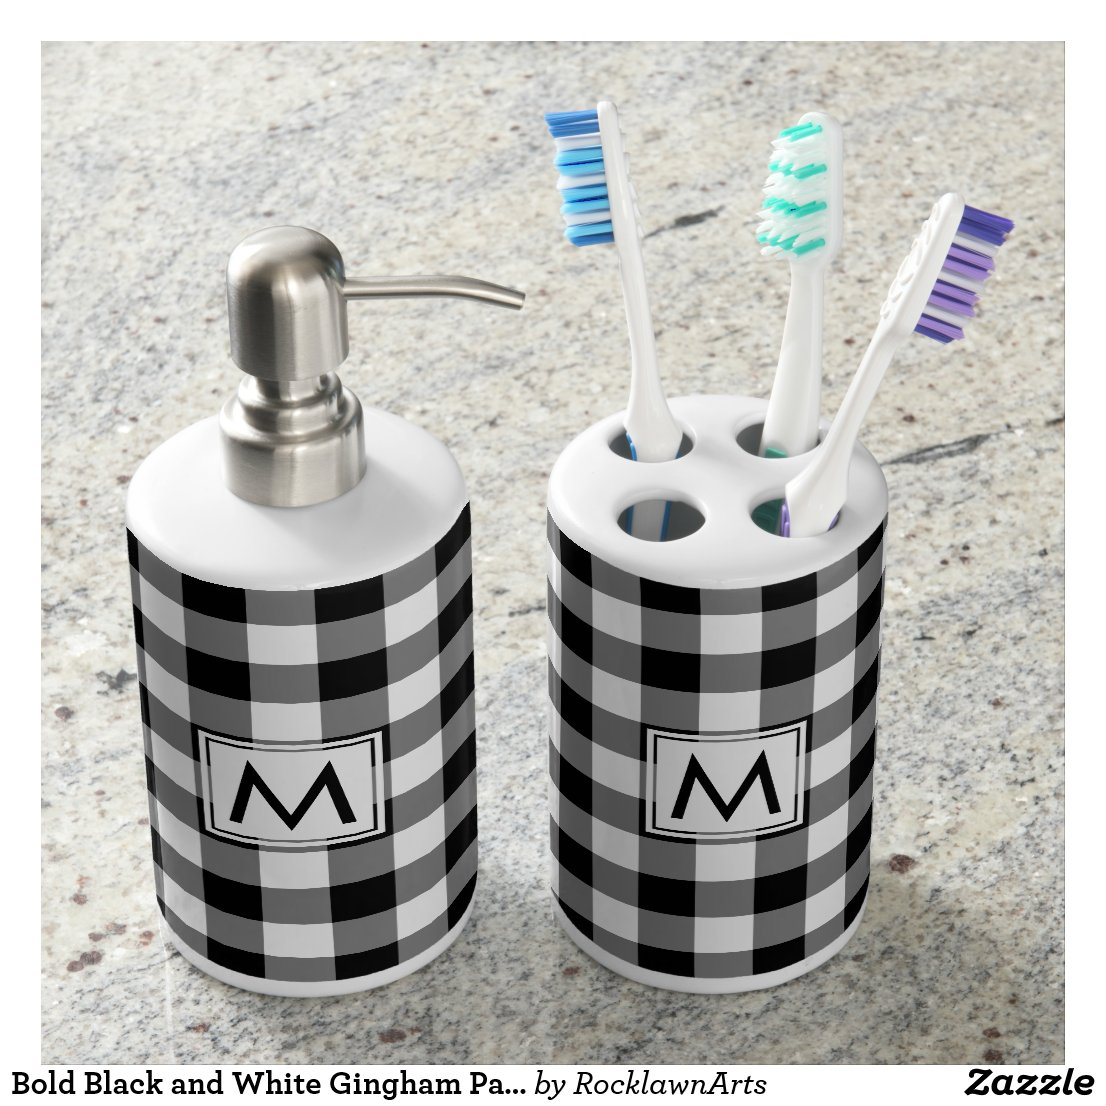 Bold Black and White Gingham Pattern with Monogram Bath Set